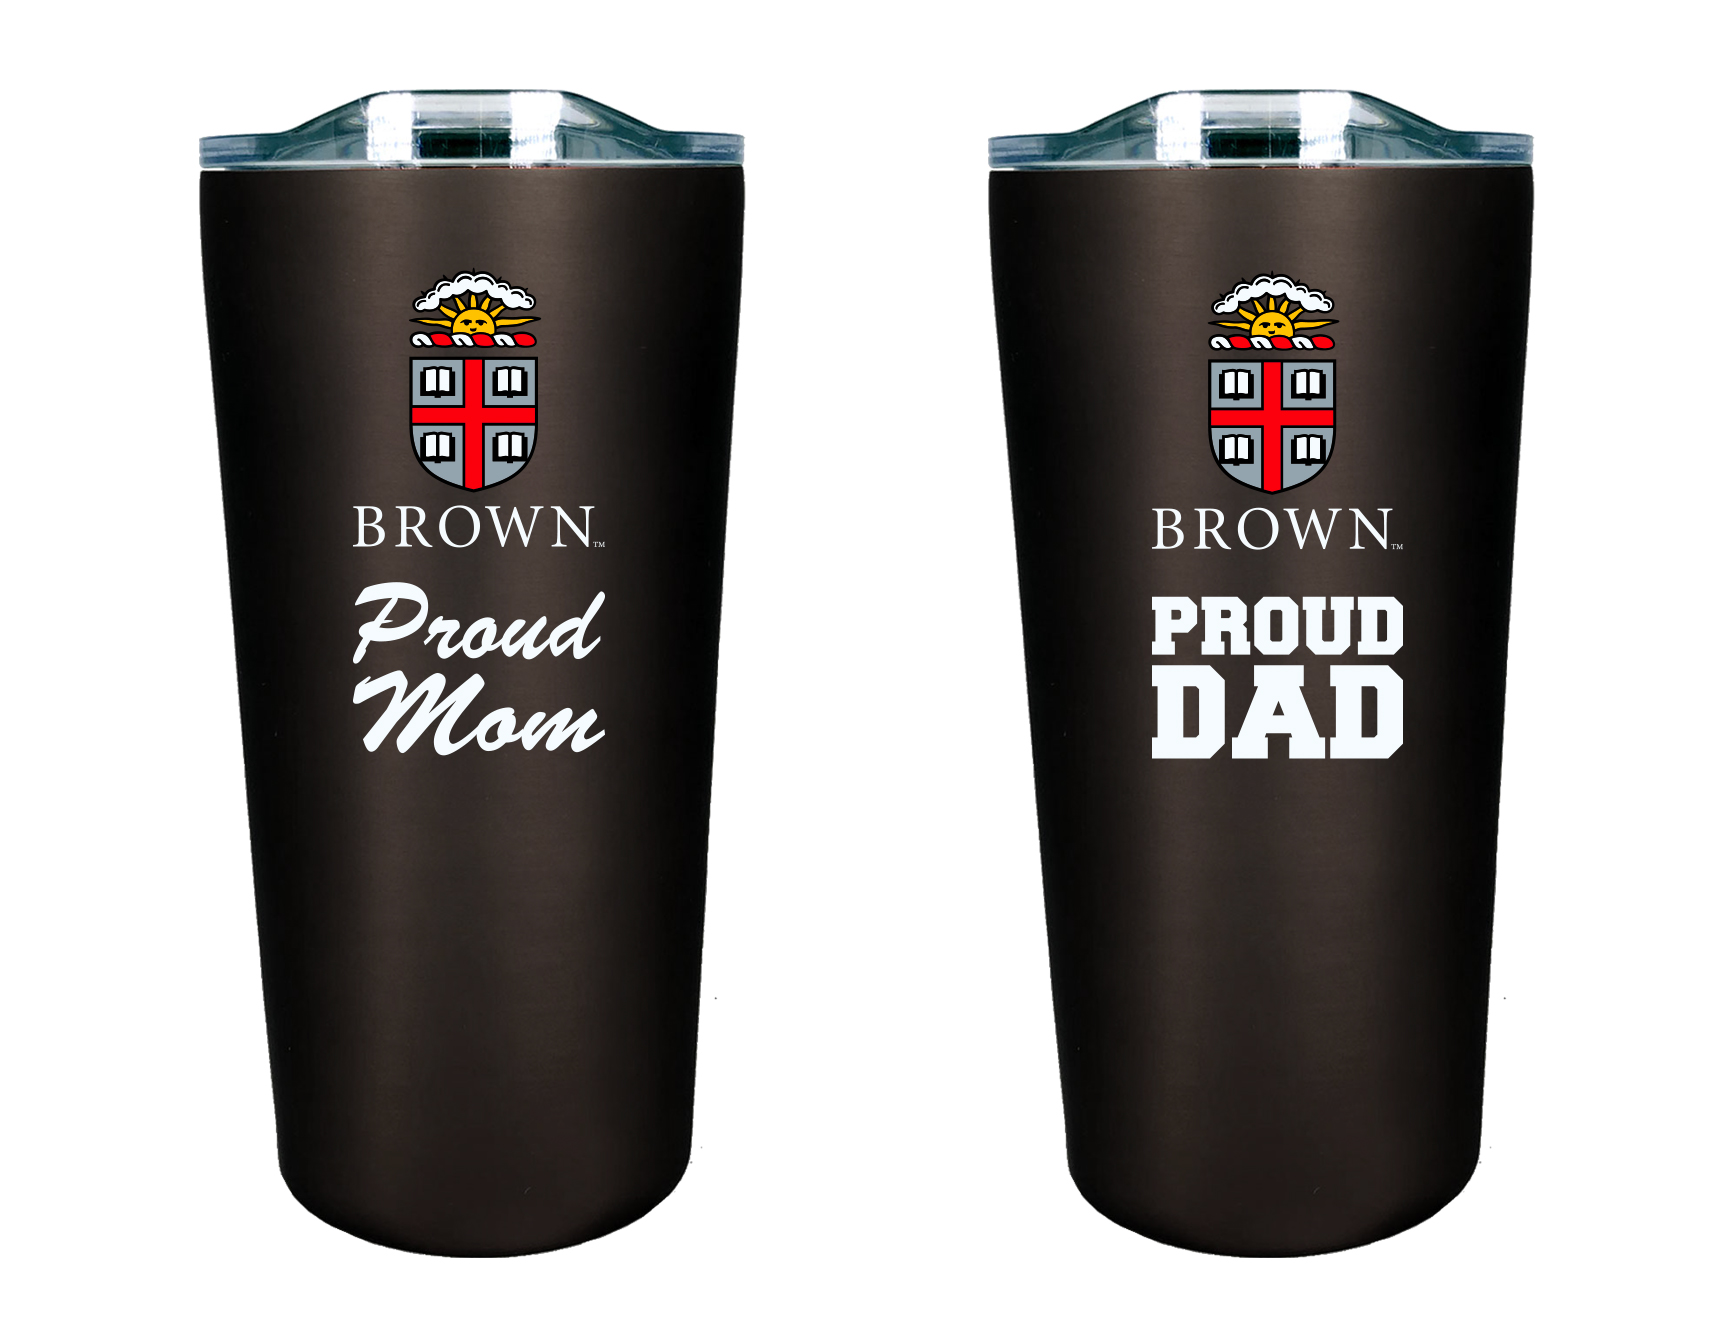 Image For BROWN PROUD Mom & Dad 2 piece tumbler set